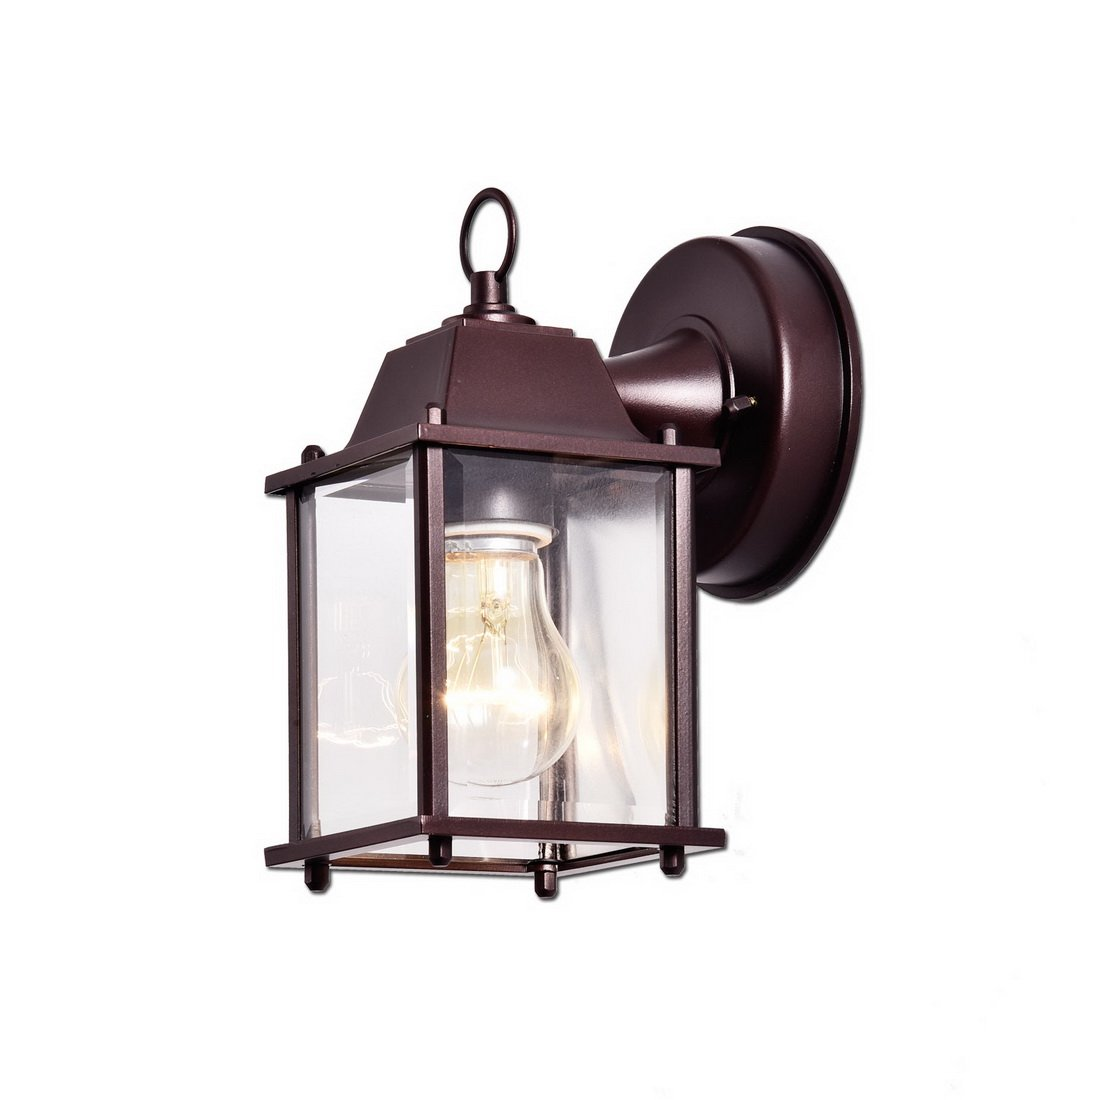 Truelite Vintage Style Outdoor Wall Sconce 1 Light Industrial Clear Glass Panels Wall Lanterns 0